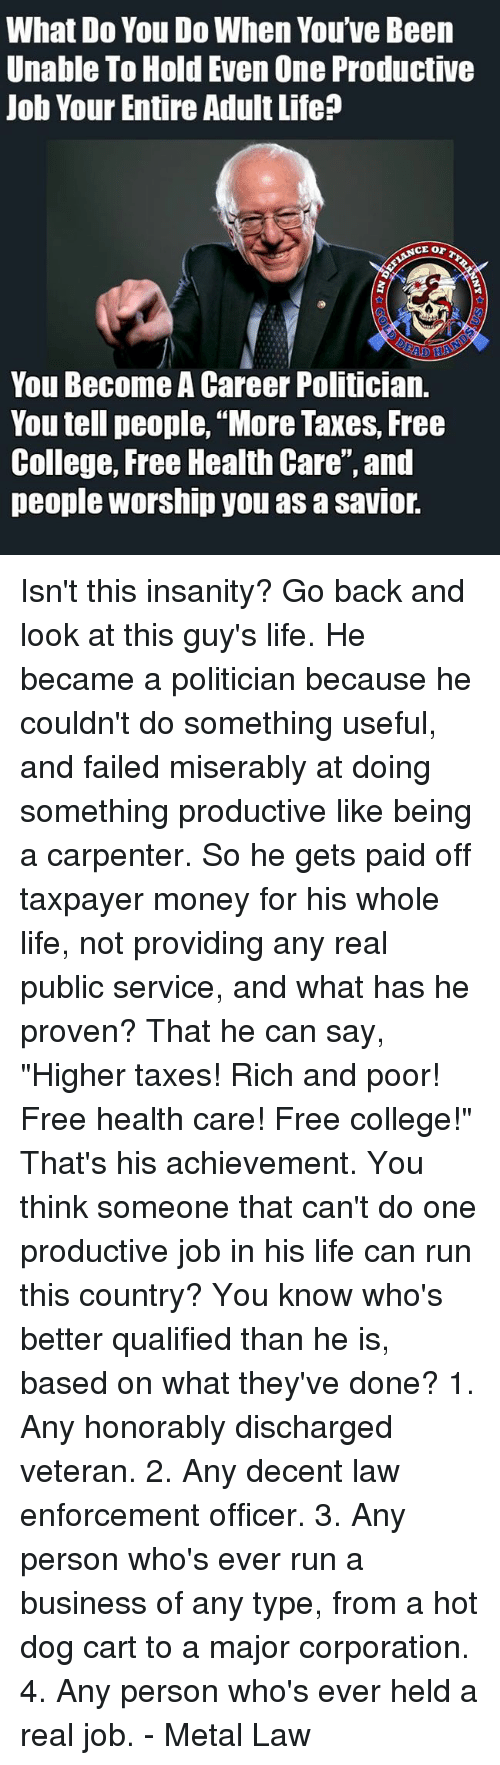 """College, Life, and Memes: What Do You Do When You've Been  Unable To Hold Even One Productive  Job Your Entire Adult Life?  You Become A Career Politician.  You tell people, """"More Taxes, Free  College, Free Health Care', and  people worship you as a savior. Isn't this insanity? Go back and look at this guy's life. He became a politician because he couldn't do something useful, and failed miserably at doing something productive like being a carpenter. So he gets paid off taxpayer money for his whole life, not providing any real public service, and what has he proven?  That he can say, """"Higher taxes! Rich and poor! Free health care! Free college!"""" That's his achievement. You think someone that can't do one productive job in his life can run this country?  You know who's better qualified than he is, based on what they've done?  1. Any honorably discharged veteran. 2. Any decent law enforcement officer. 3. Any person who's ever run a business of any type, from a hot dog cart to a major corporation. 4. Any person who's ever held a real job.  - Metal Law"""